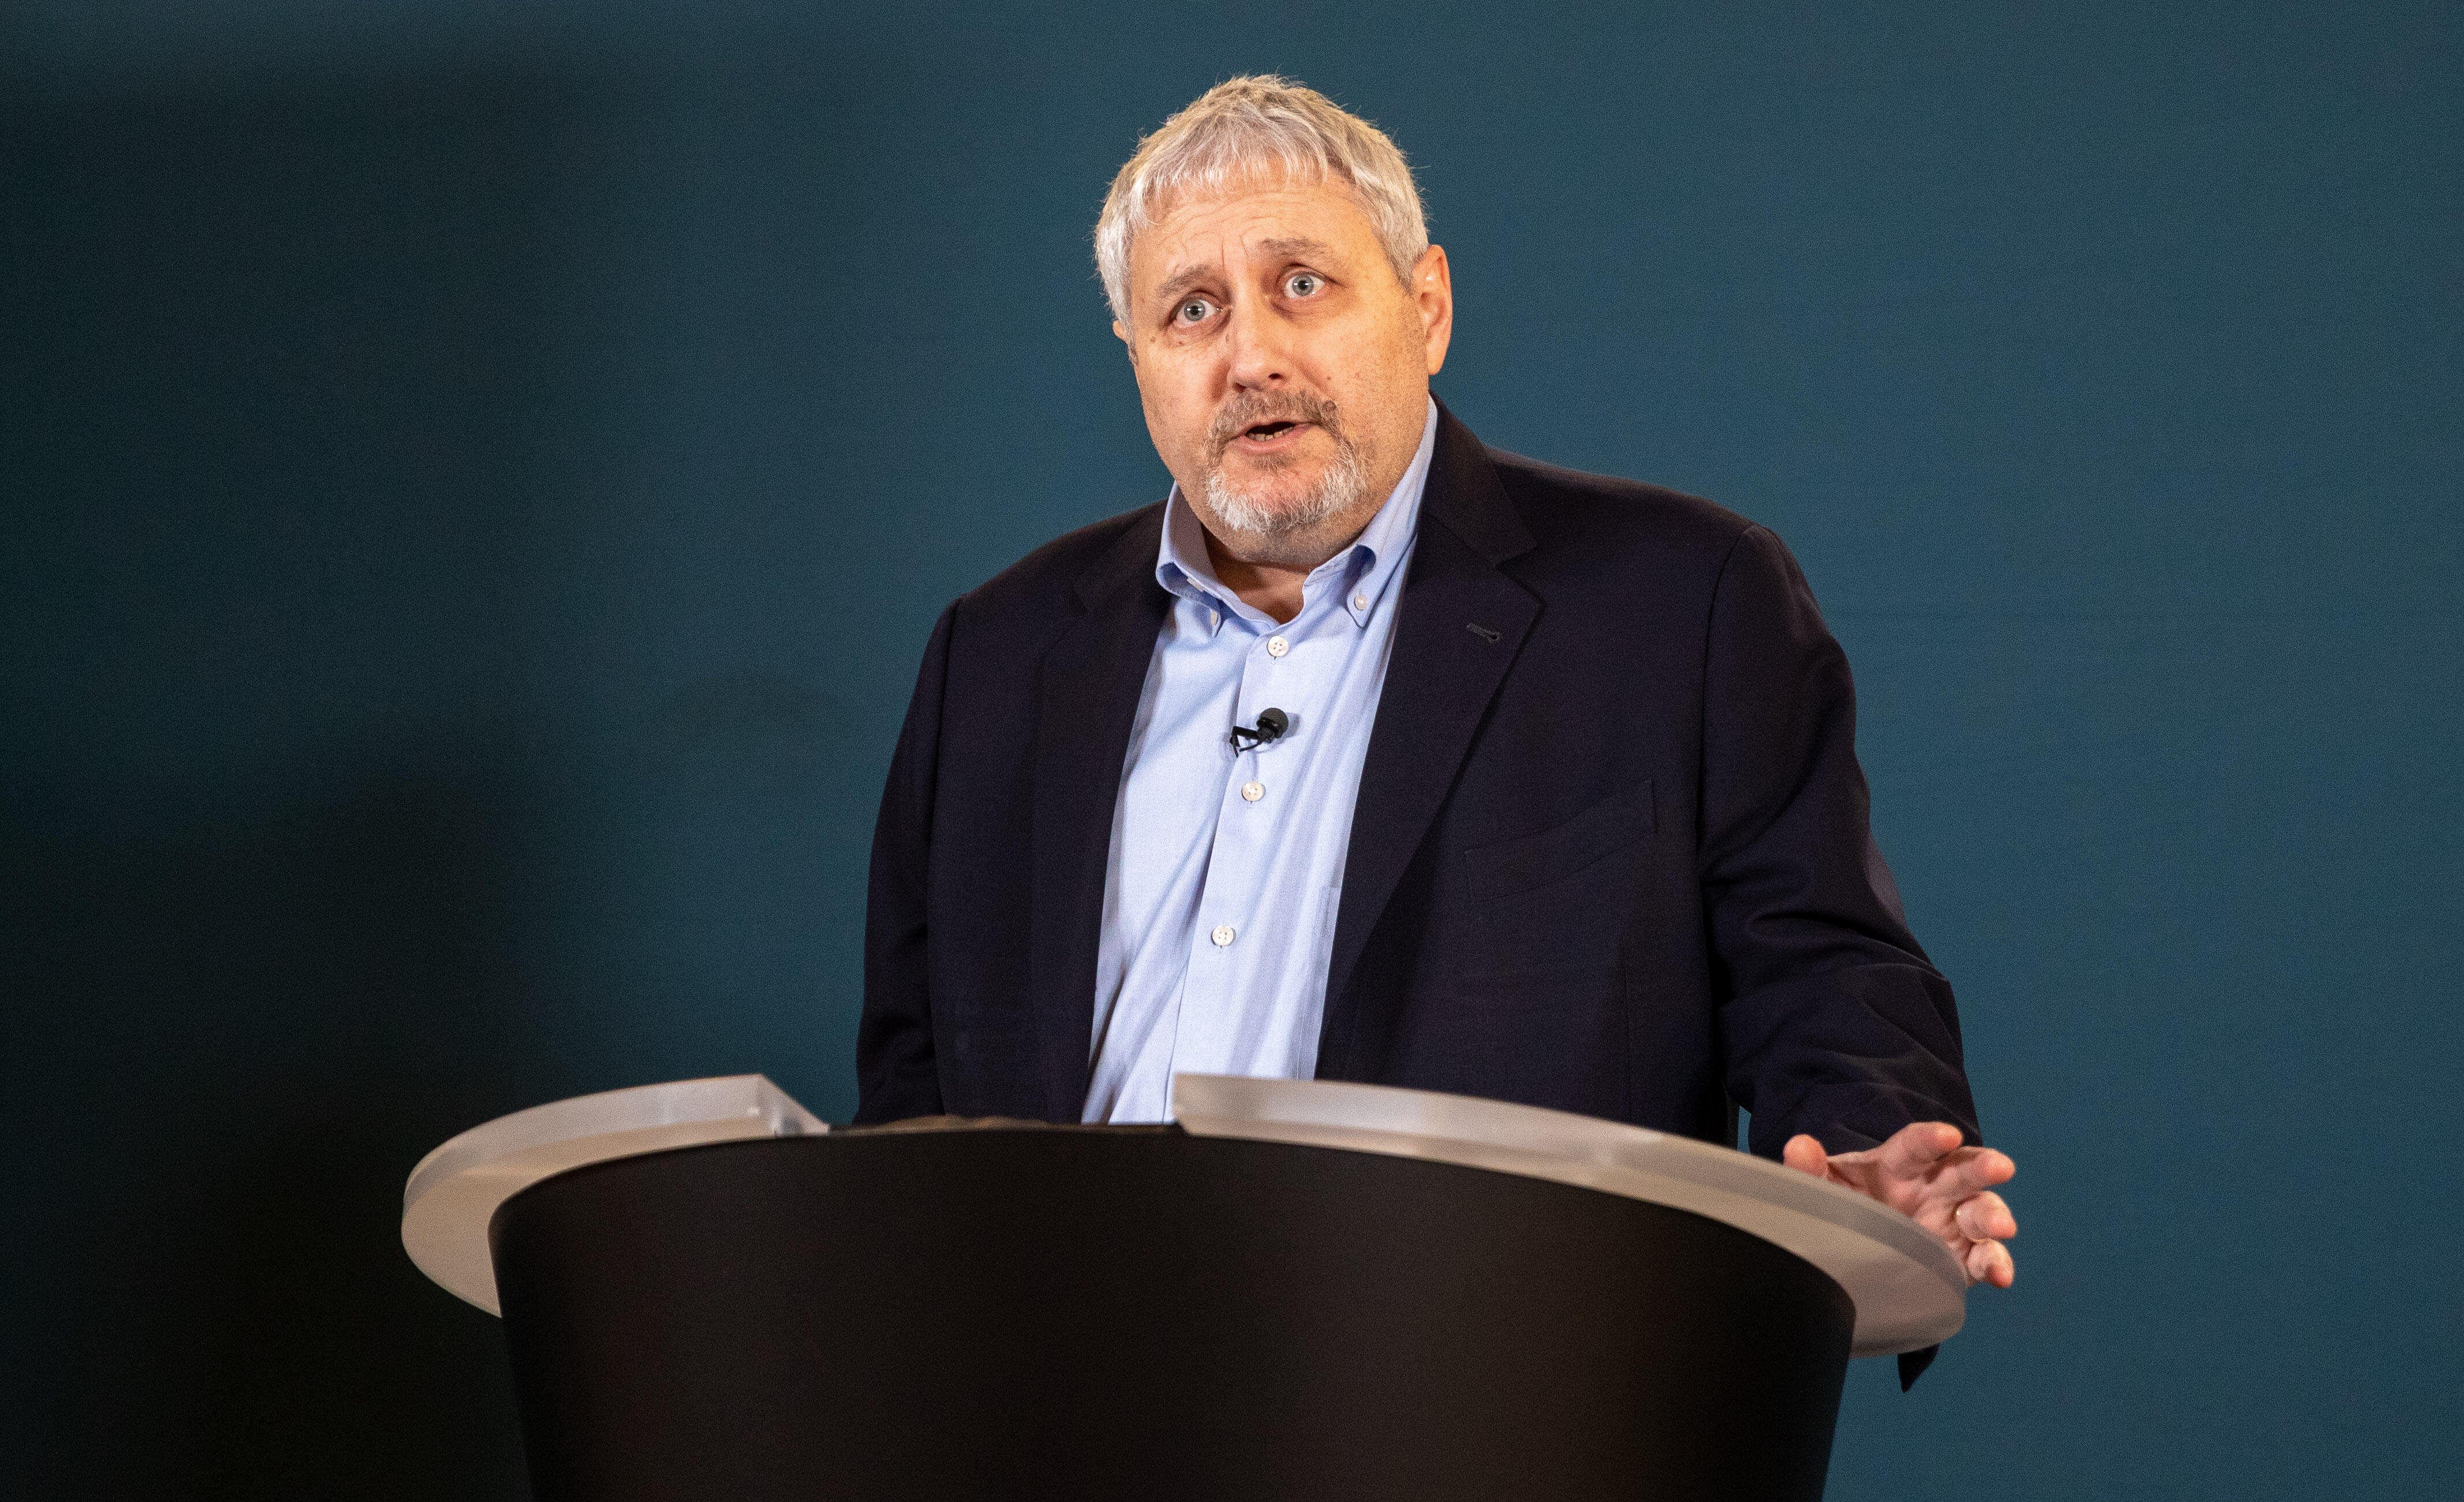 Lawrence Livermore National Laboratory Director Bill Goldstein